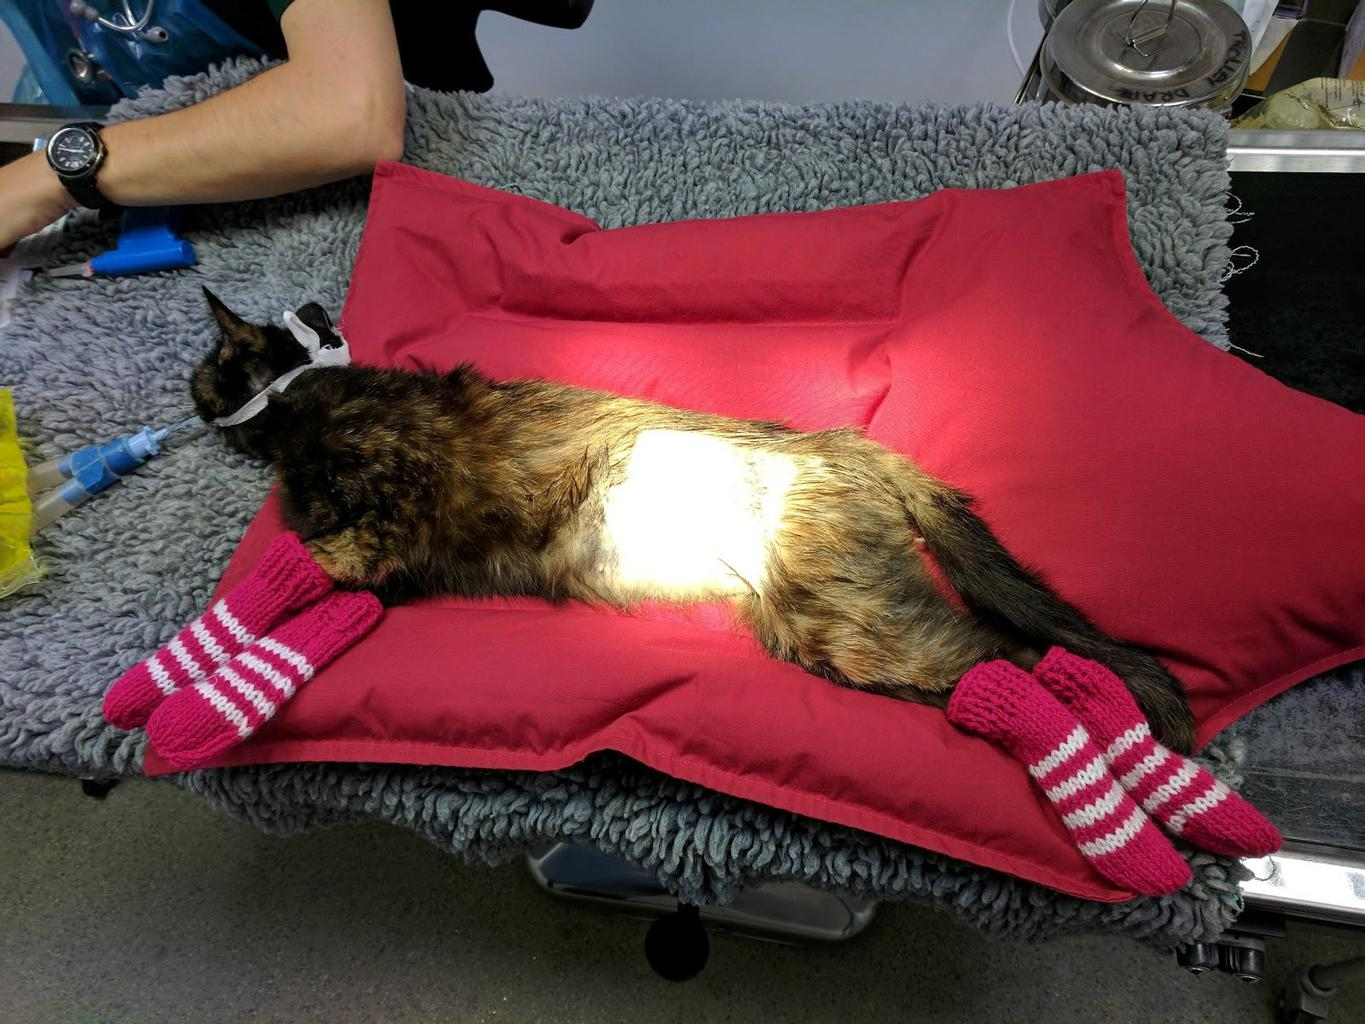 The RSPCA is calling on knitters to put their skills to use this Wool Week by whipping up leg warmers for sick kittens, snuggly nests for baby hedgehogs and jumpers for chilly dogs. Tags: cat knitted RSPCA